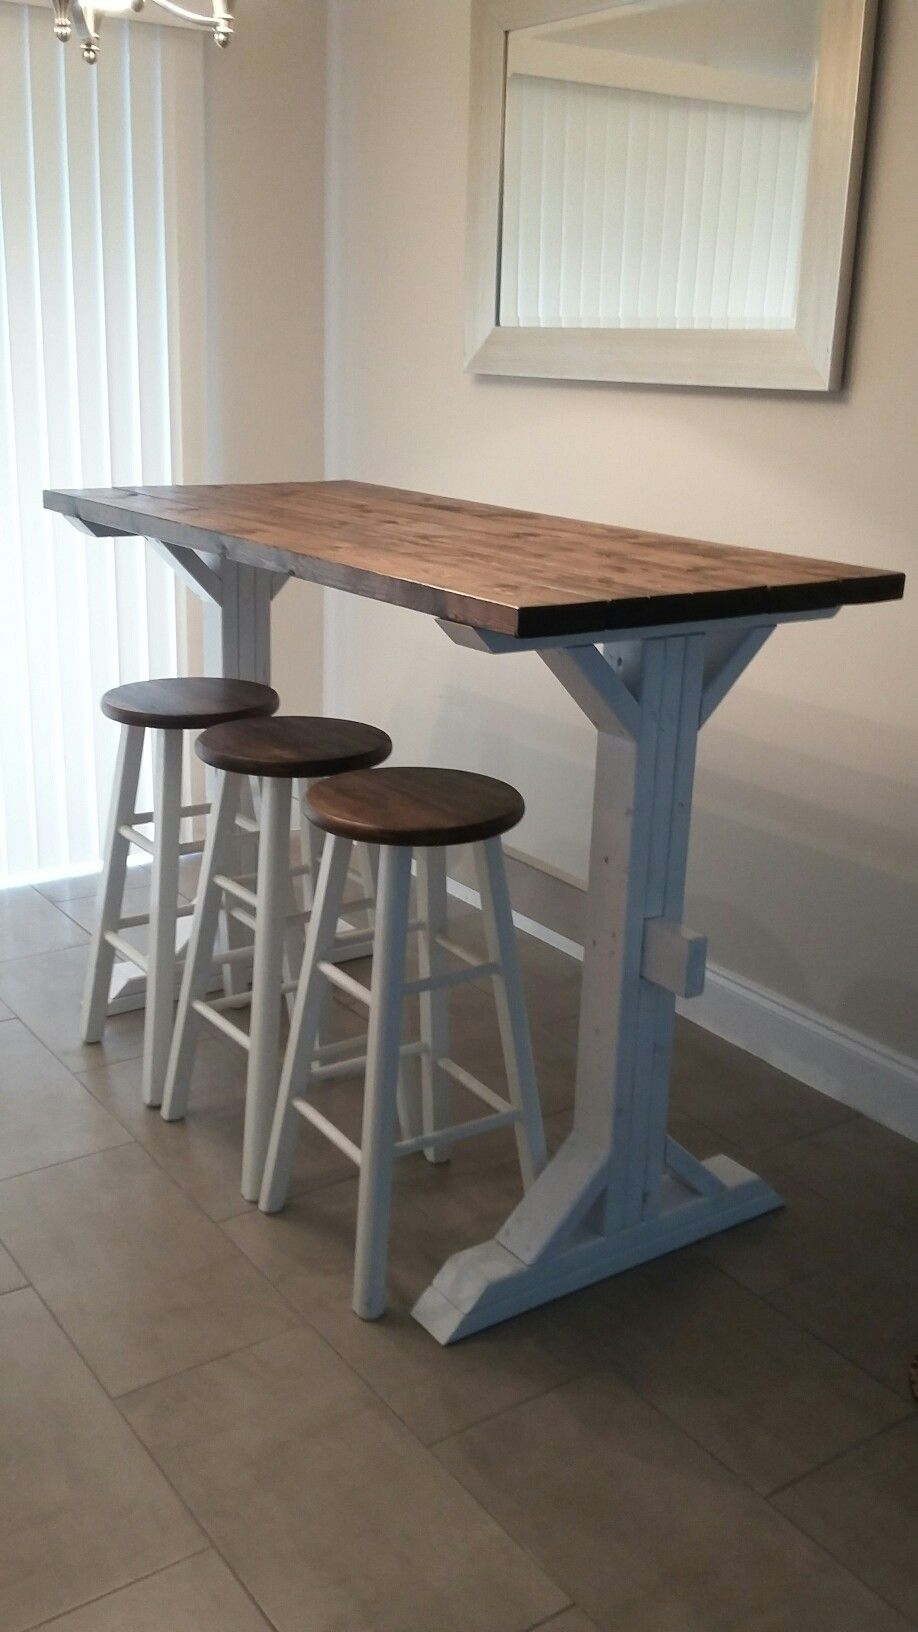 Farmhouse Style Bar Height Table Make It Sell It Bar